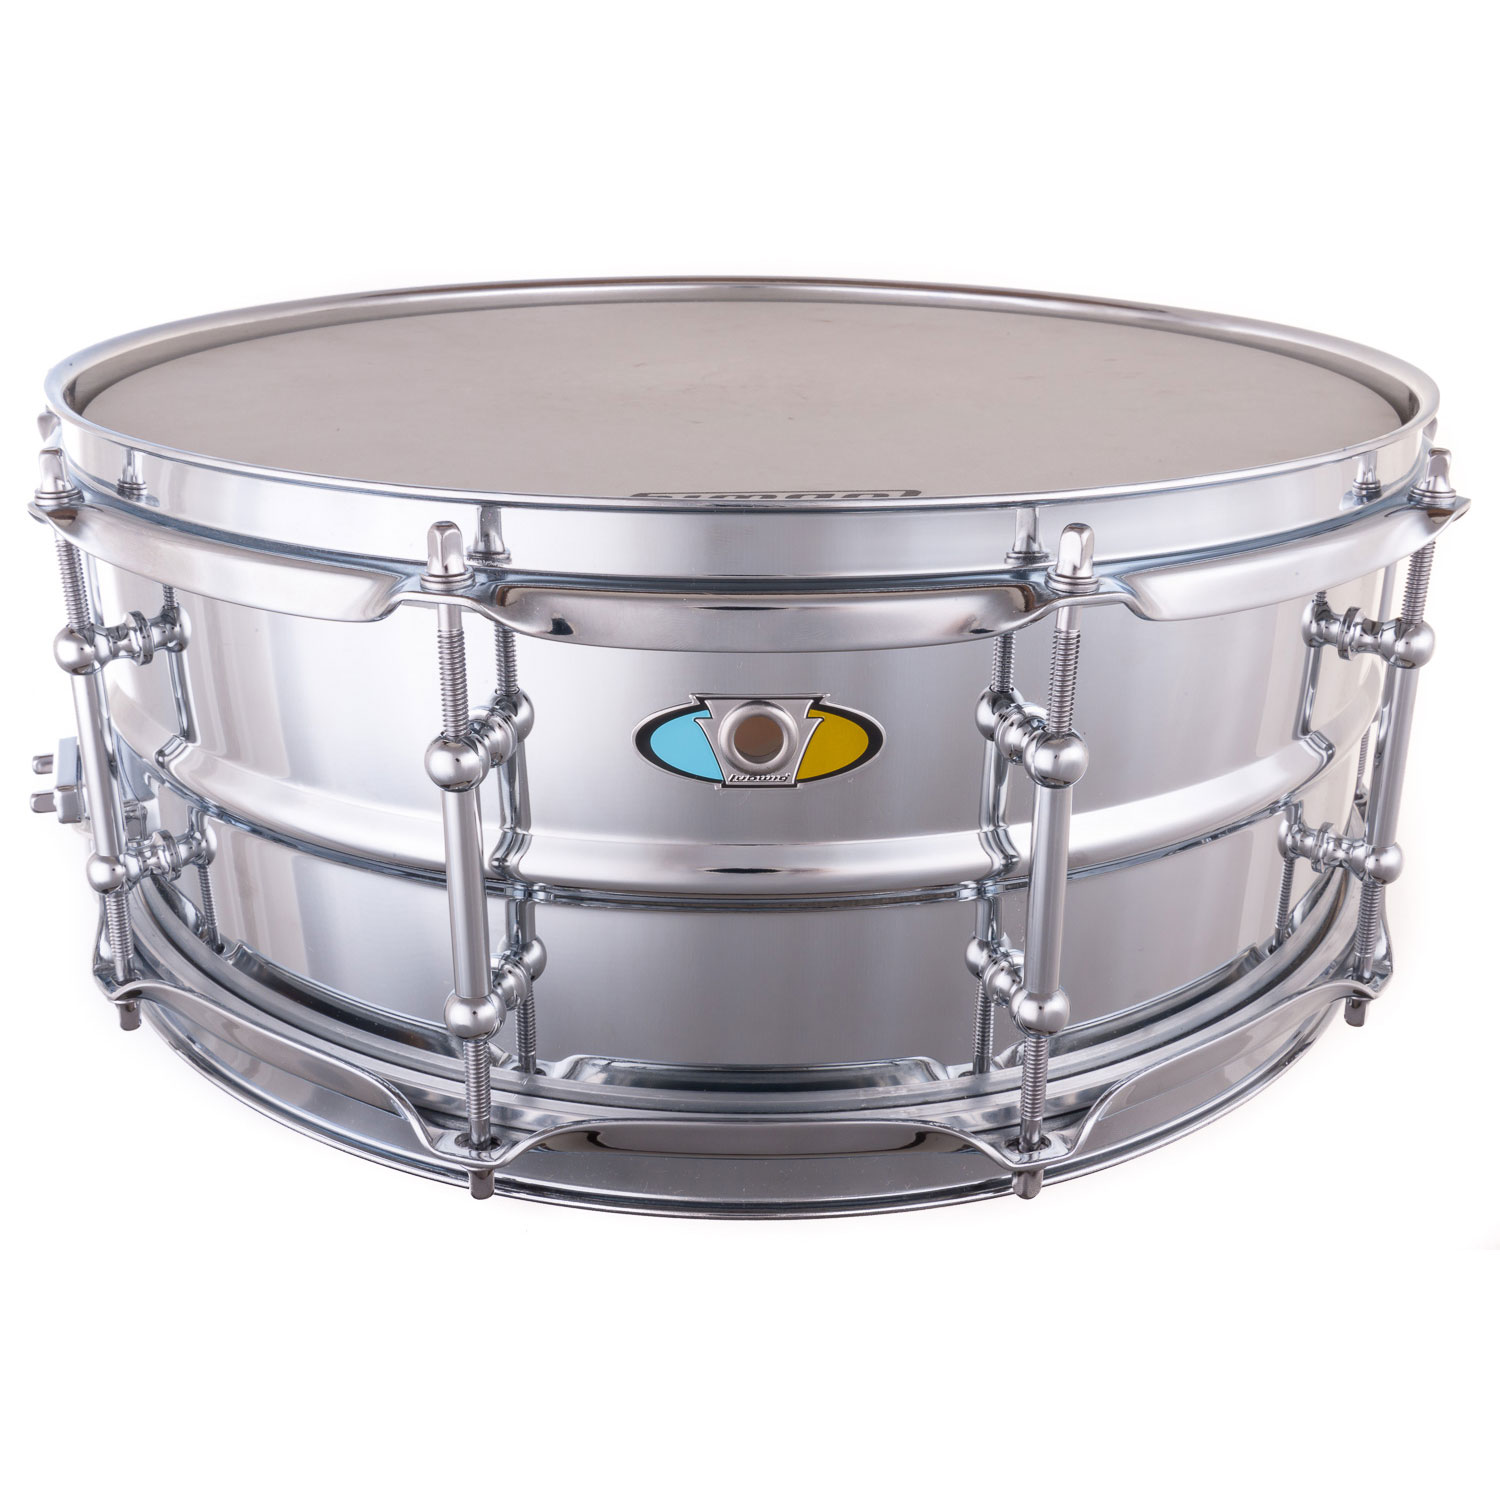 "Ludwig 5.5"" x 14"" Supralite Snare Drum"